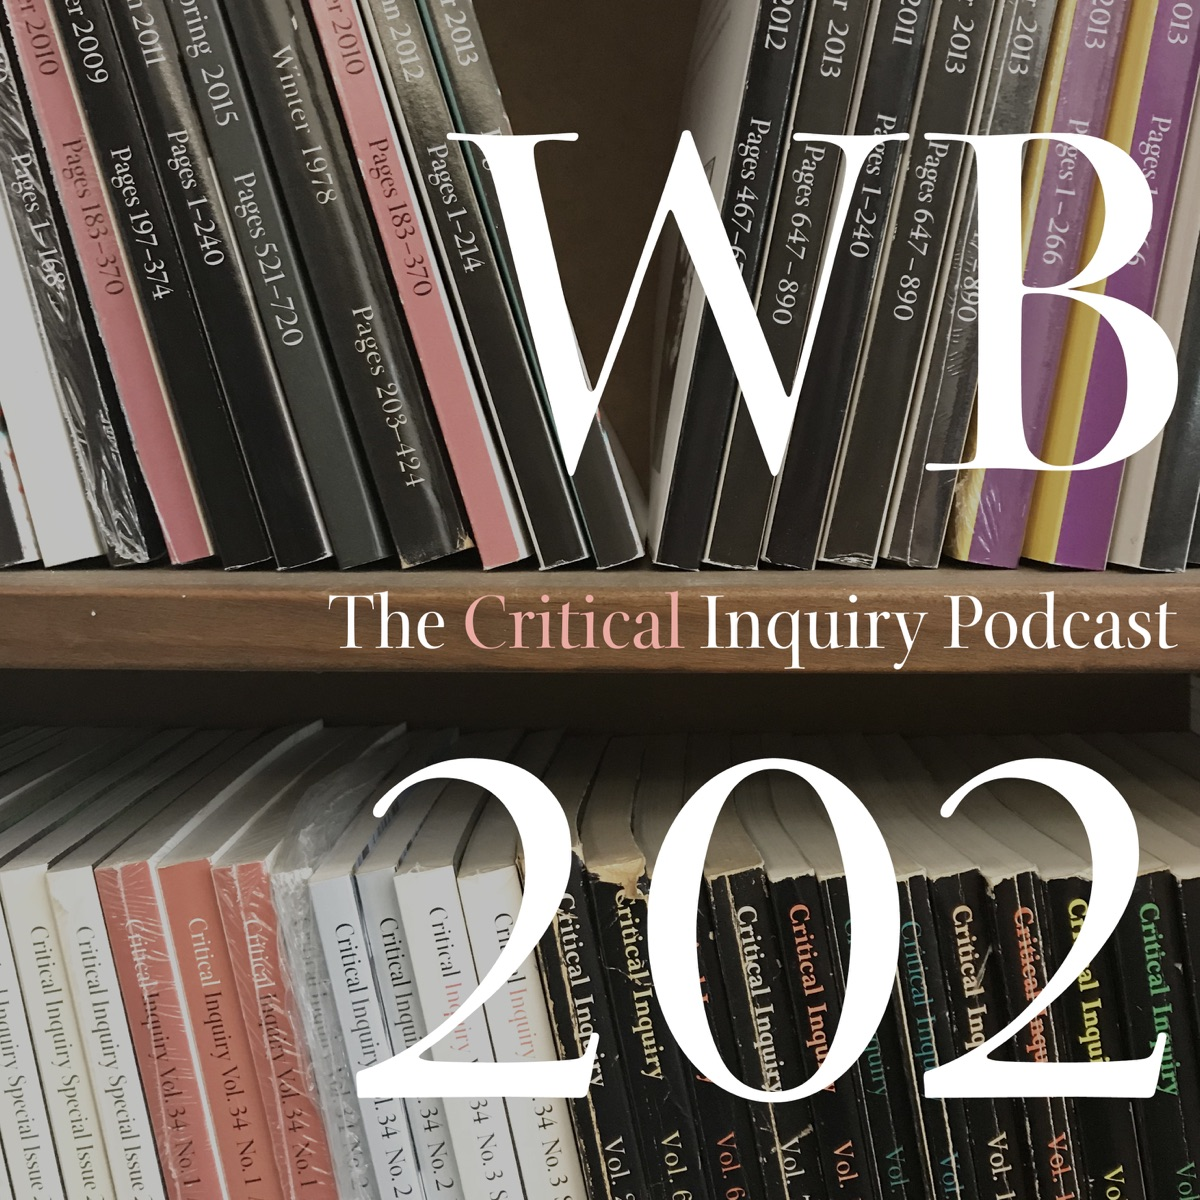 WB202: The Critical Inquiry Podcast